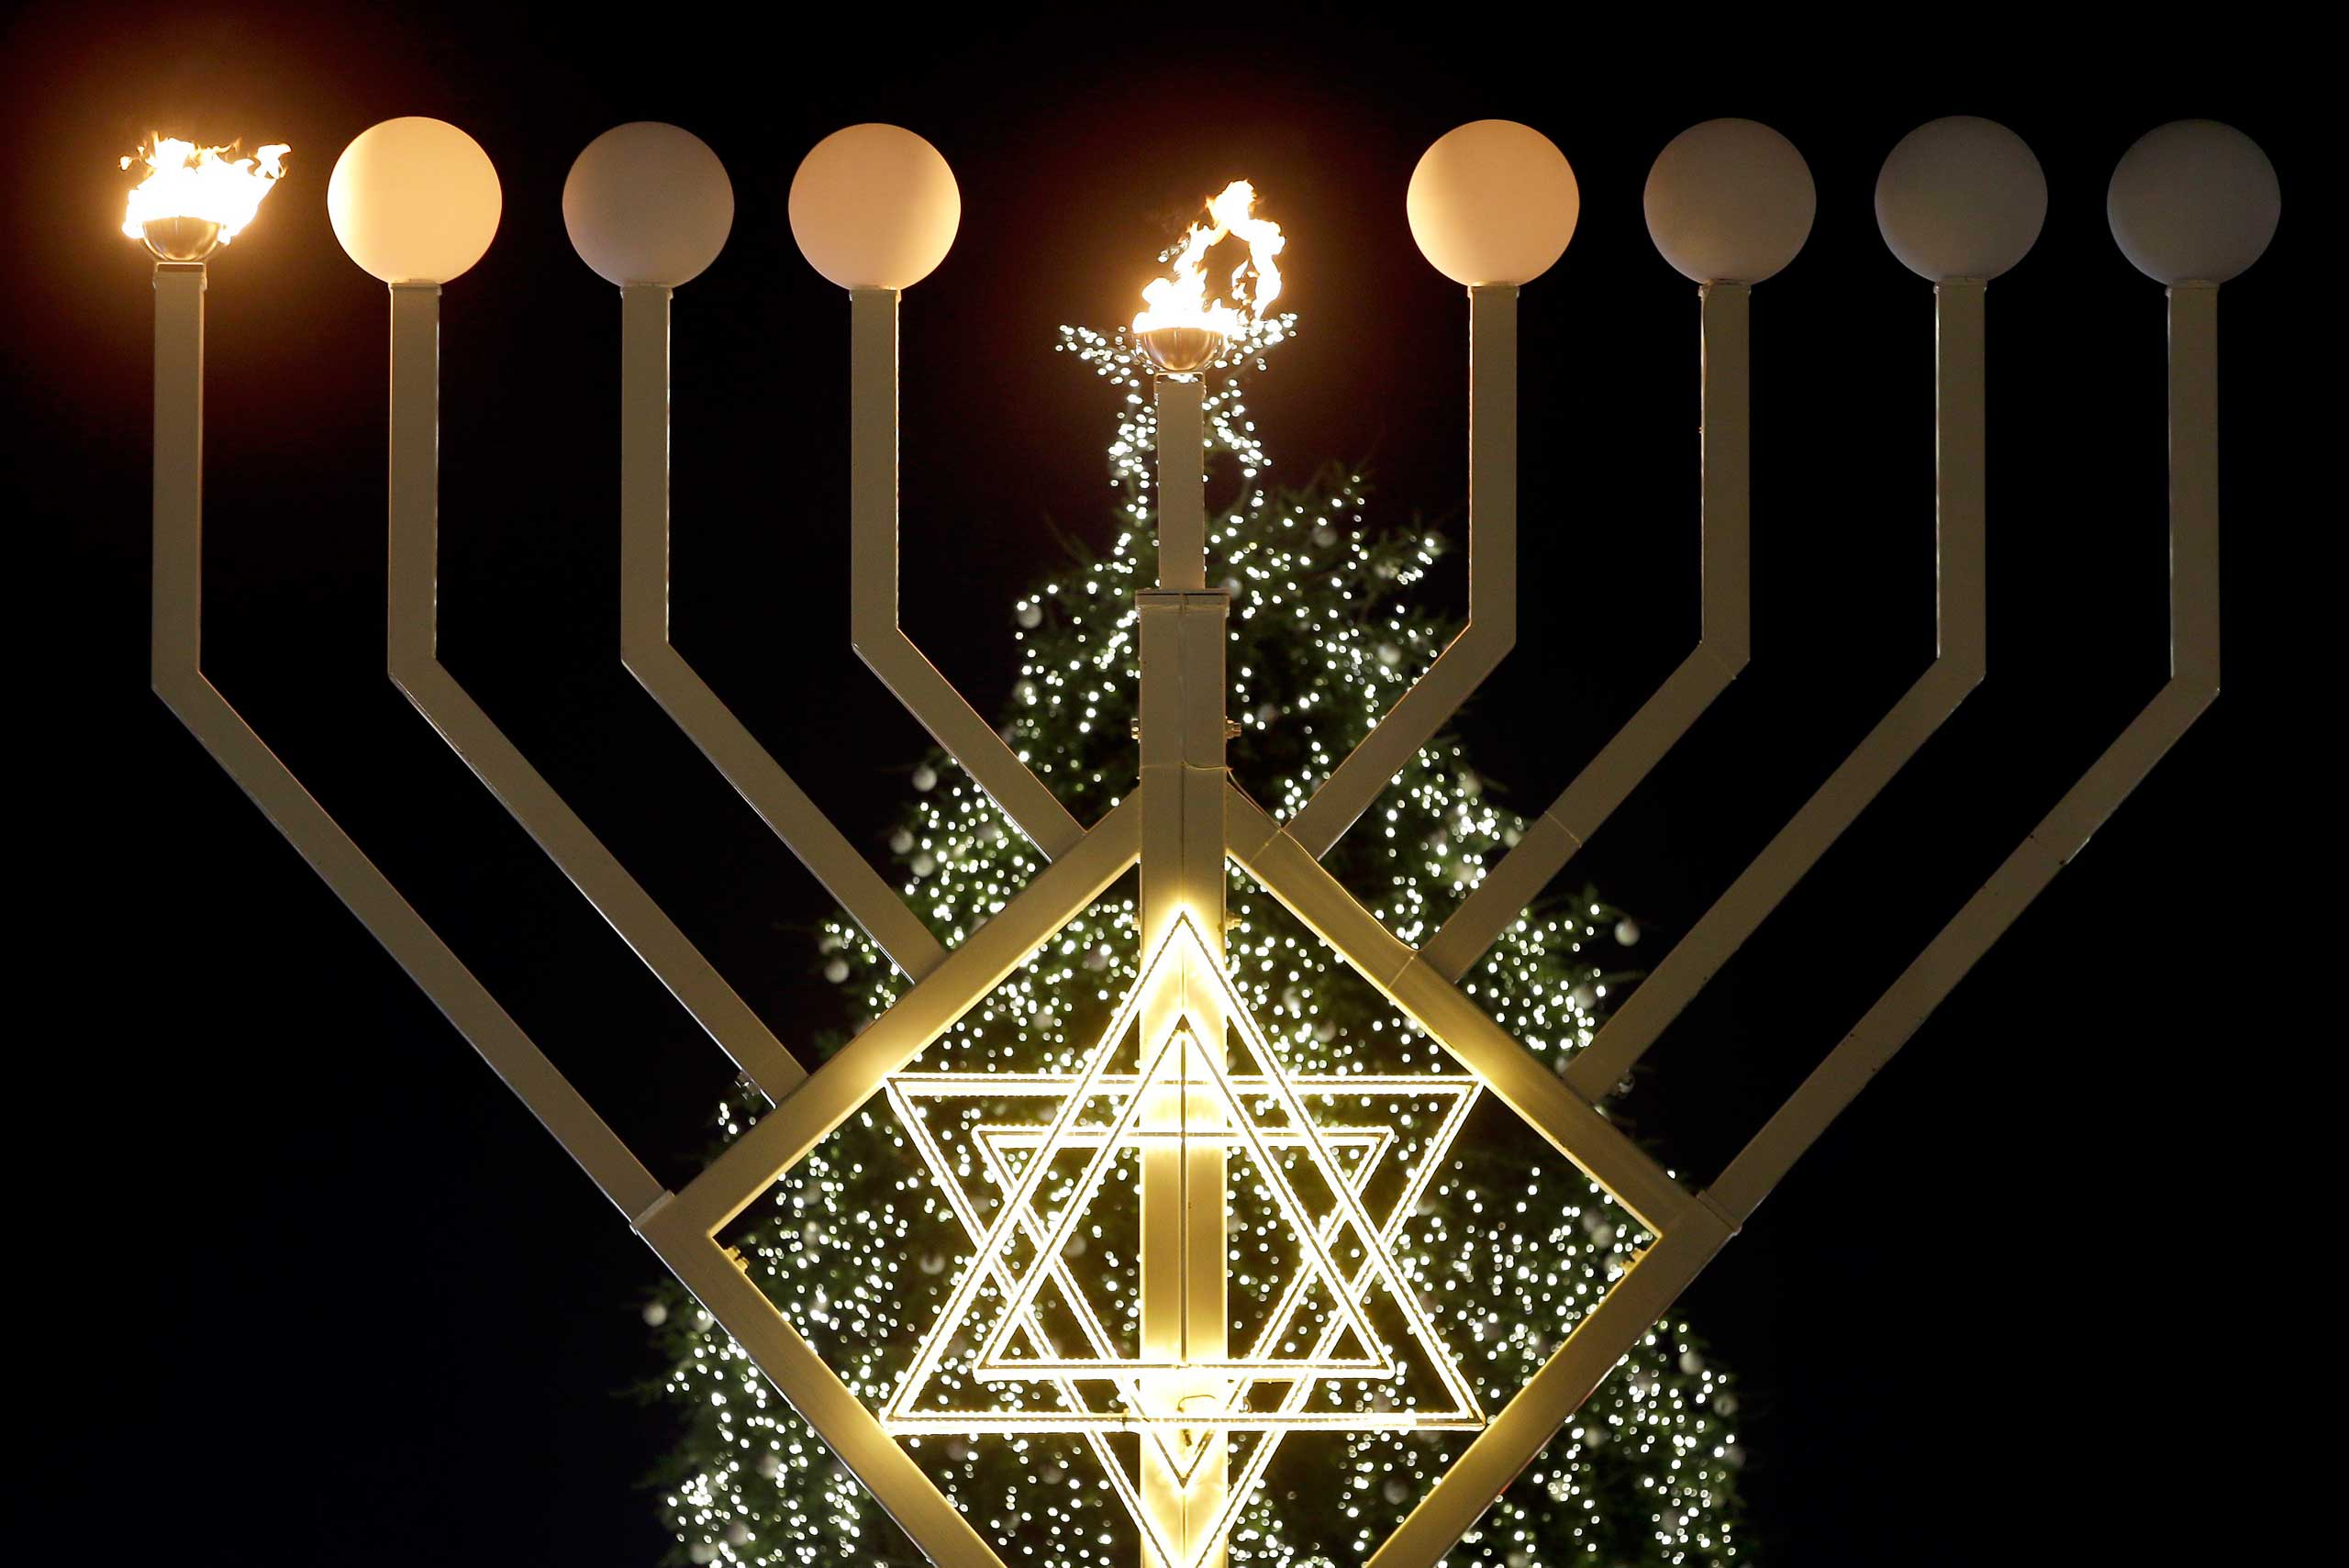 The first flames of a giant Hanukkah Menorah in front of a Christmas tree at the Brandenburg Gate in Berlin, Germany, Dec. 16, 2014.